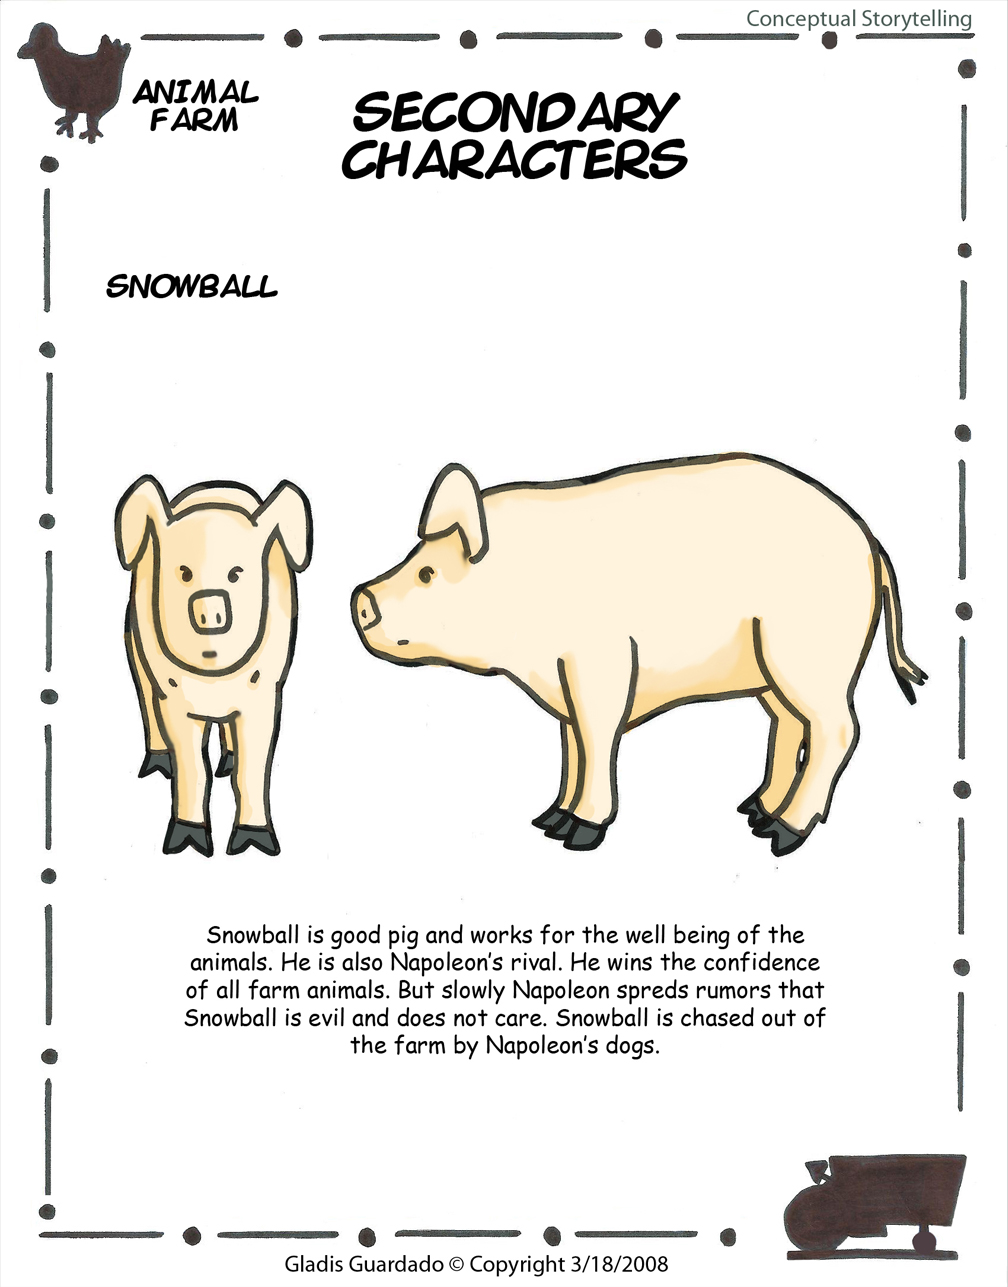 a character analysis of napoleon in the animal farm Animal farm: napoleon character analysis posted on march 24, 2018 march 29, 2018 by quicklits to celebrate the release of our third study guide, quicklits guide to animal farm , we are sharing a free series of character analyses.